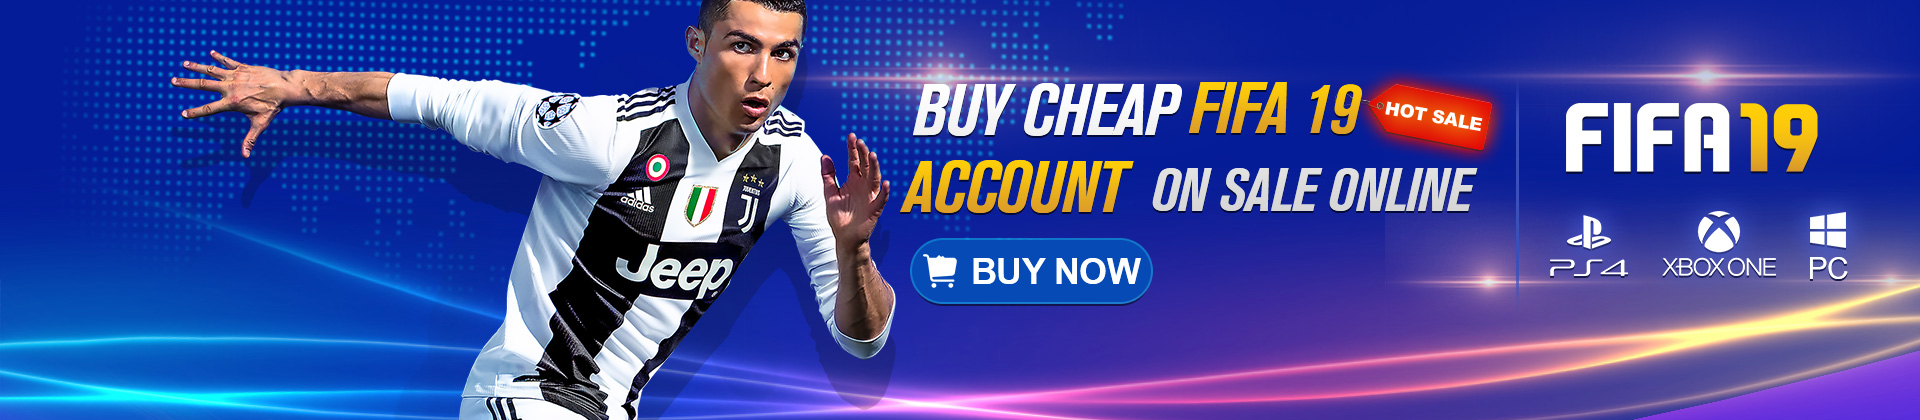 Cheap FIFA 19 Account